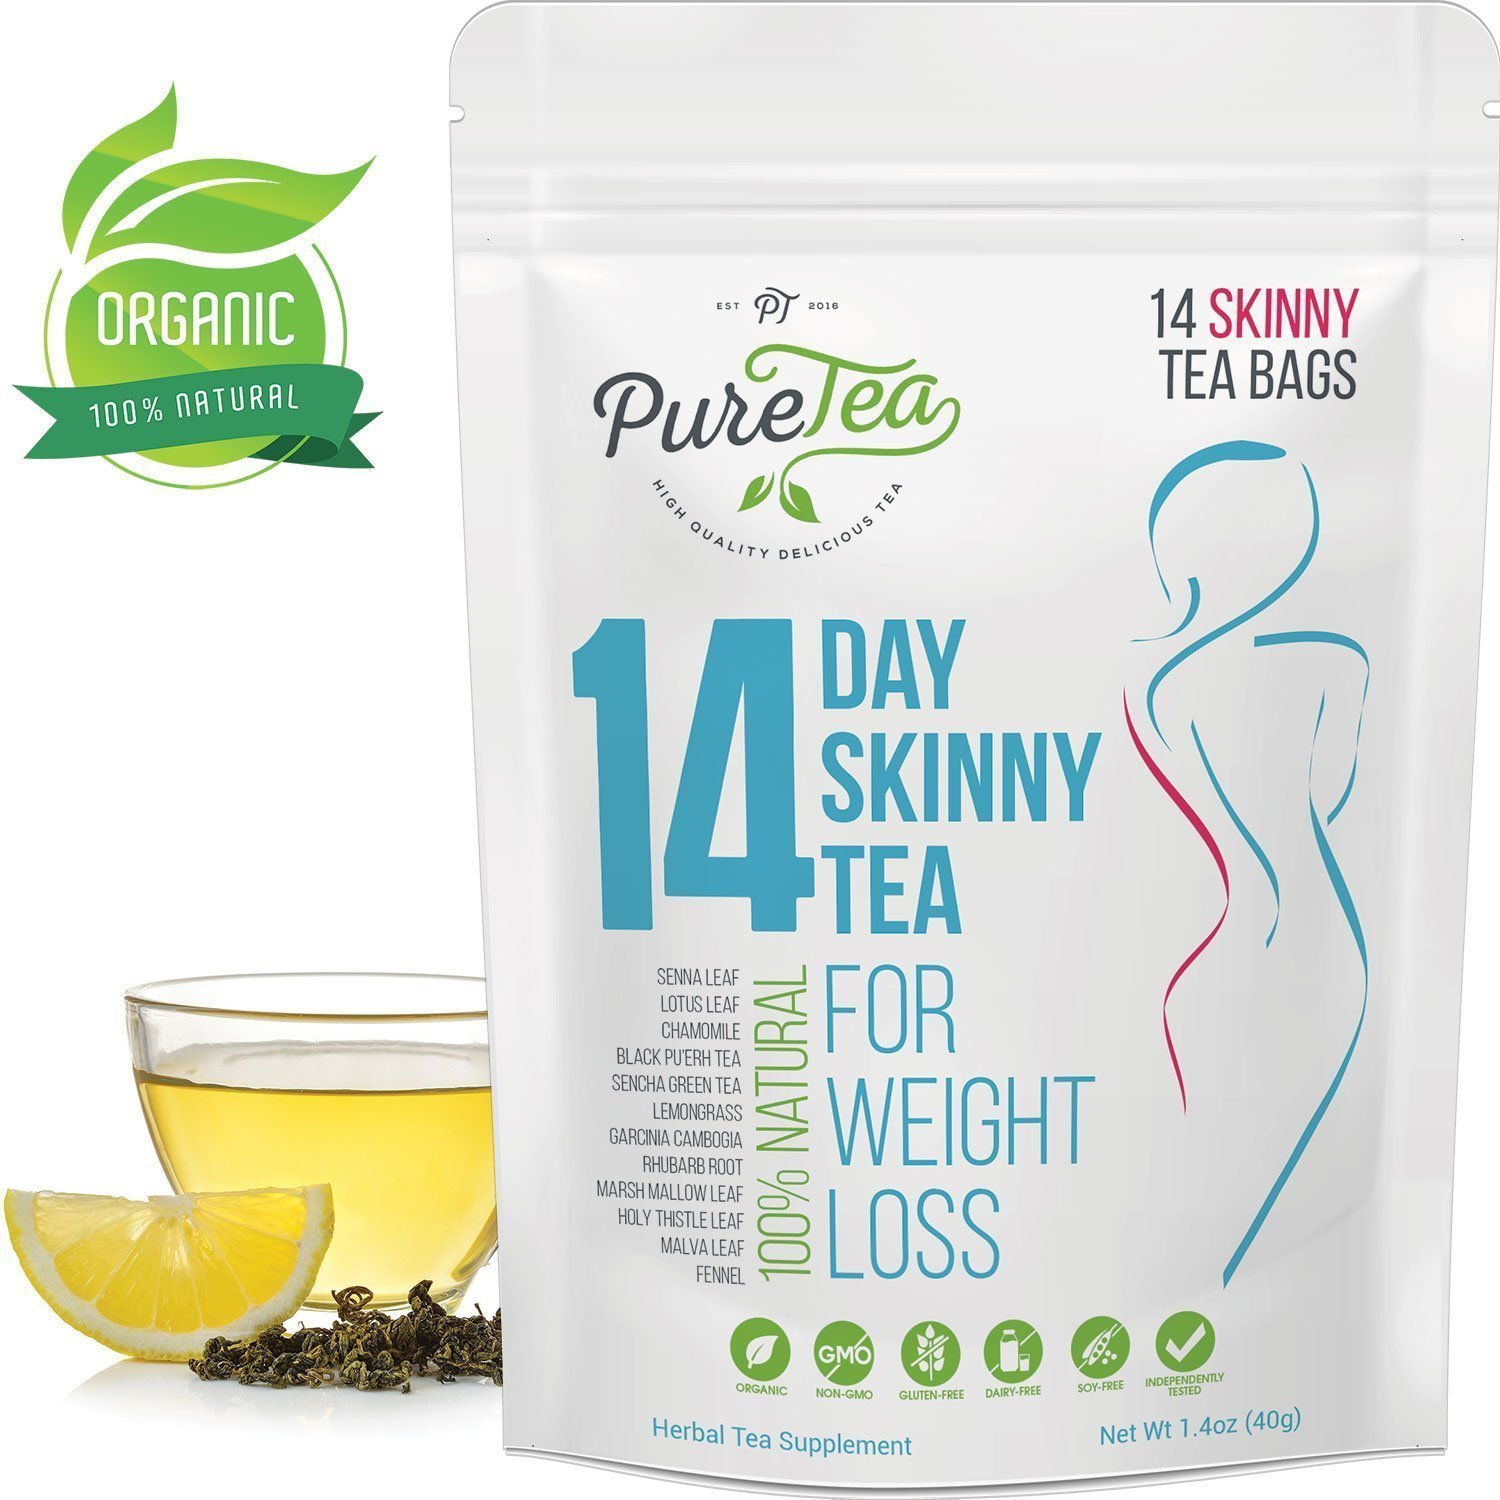 Skinny Tea Weight Loss Detox Cleanse, All Natural Herbal Diet Teatox Bags - Boost Metabolism, Reduce Bloating, Release Toxins - Fat Burning Laxative Free Slimming Blend for Women and Men - 14 Days by SilverOnyx